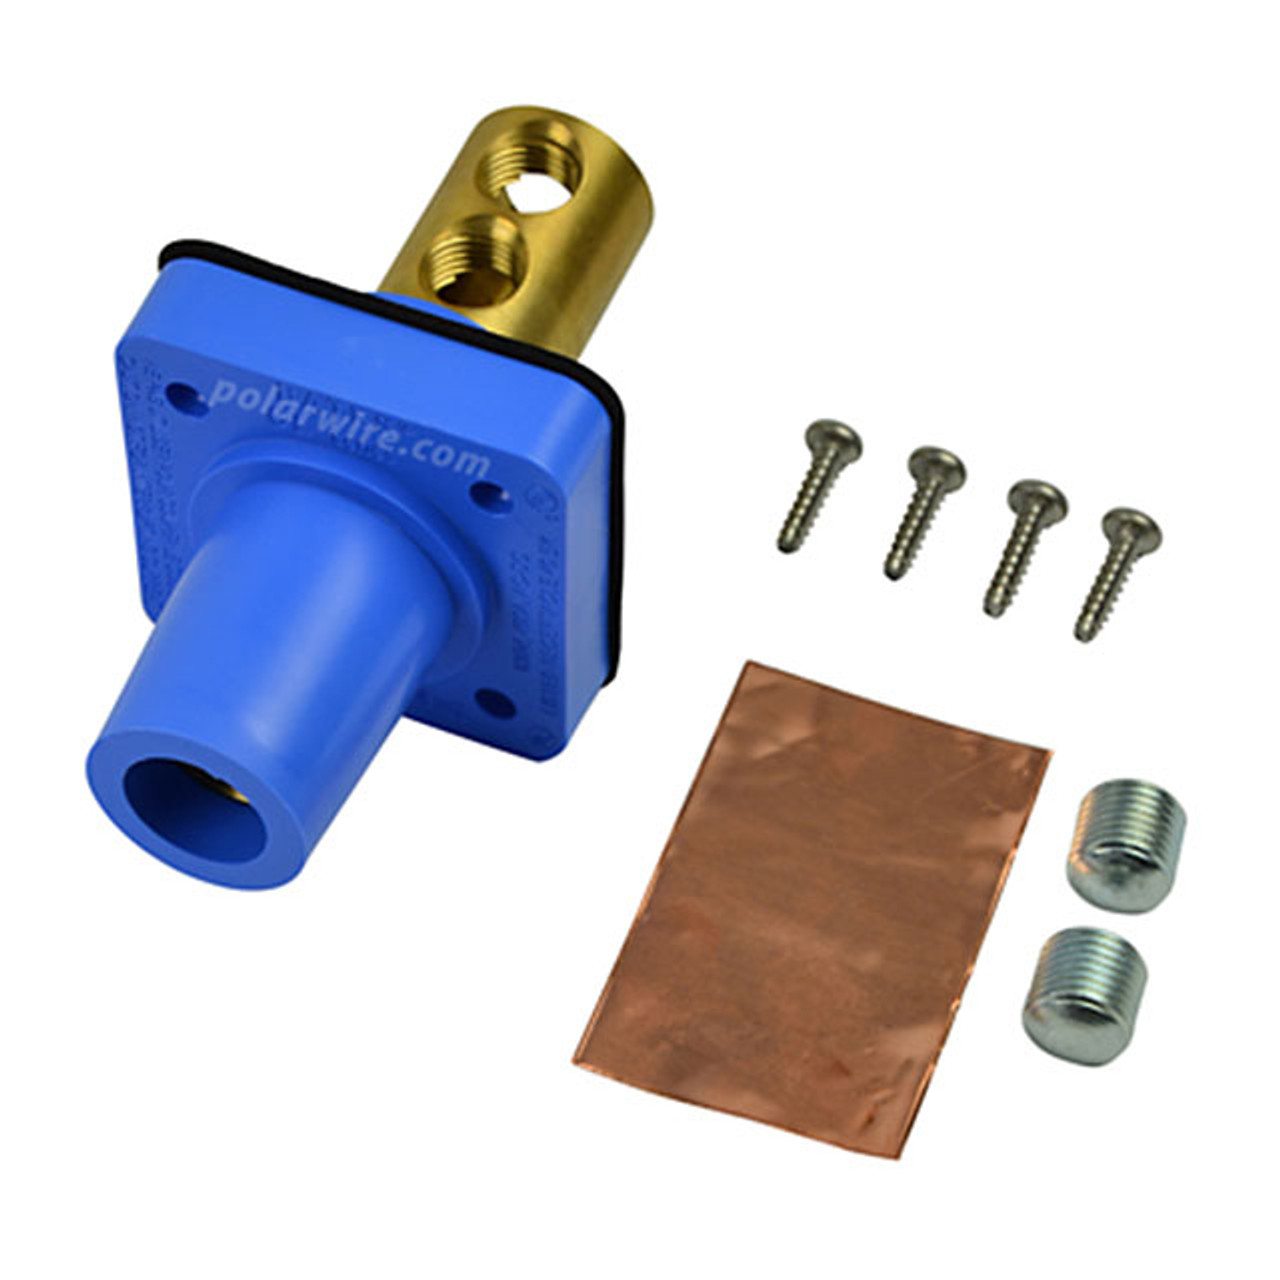 CAM LOCK 400A PANEL FEM BLUE SET SCREW 2-2/0